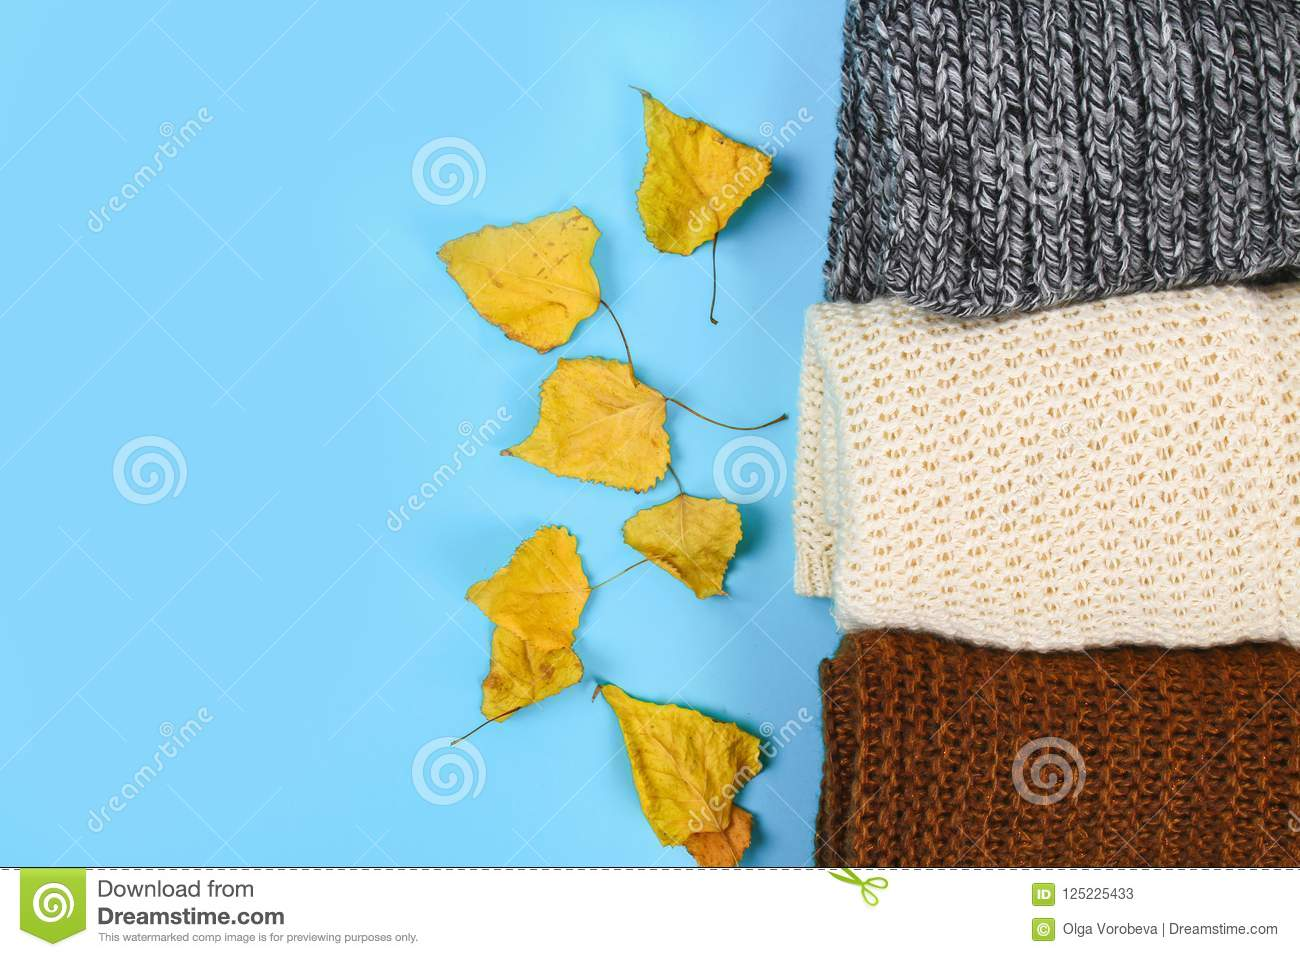 373f36baa4 Warm Knitted Sweaters. Pile Of Knitted Clothes On Blue Background ...